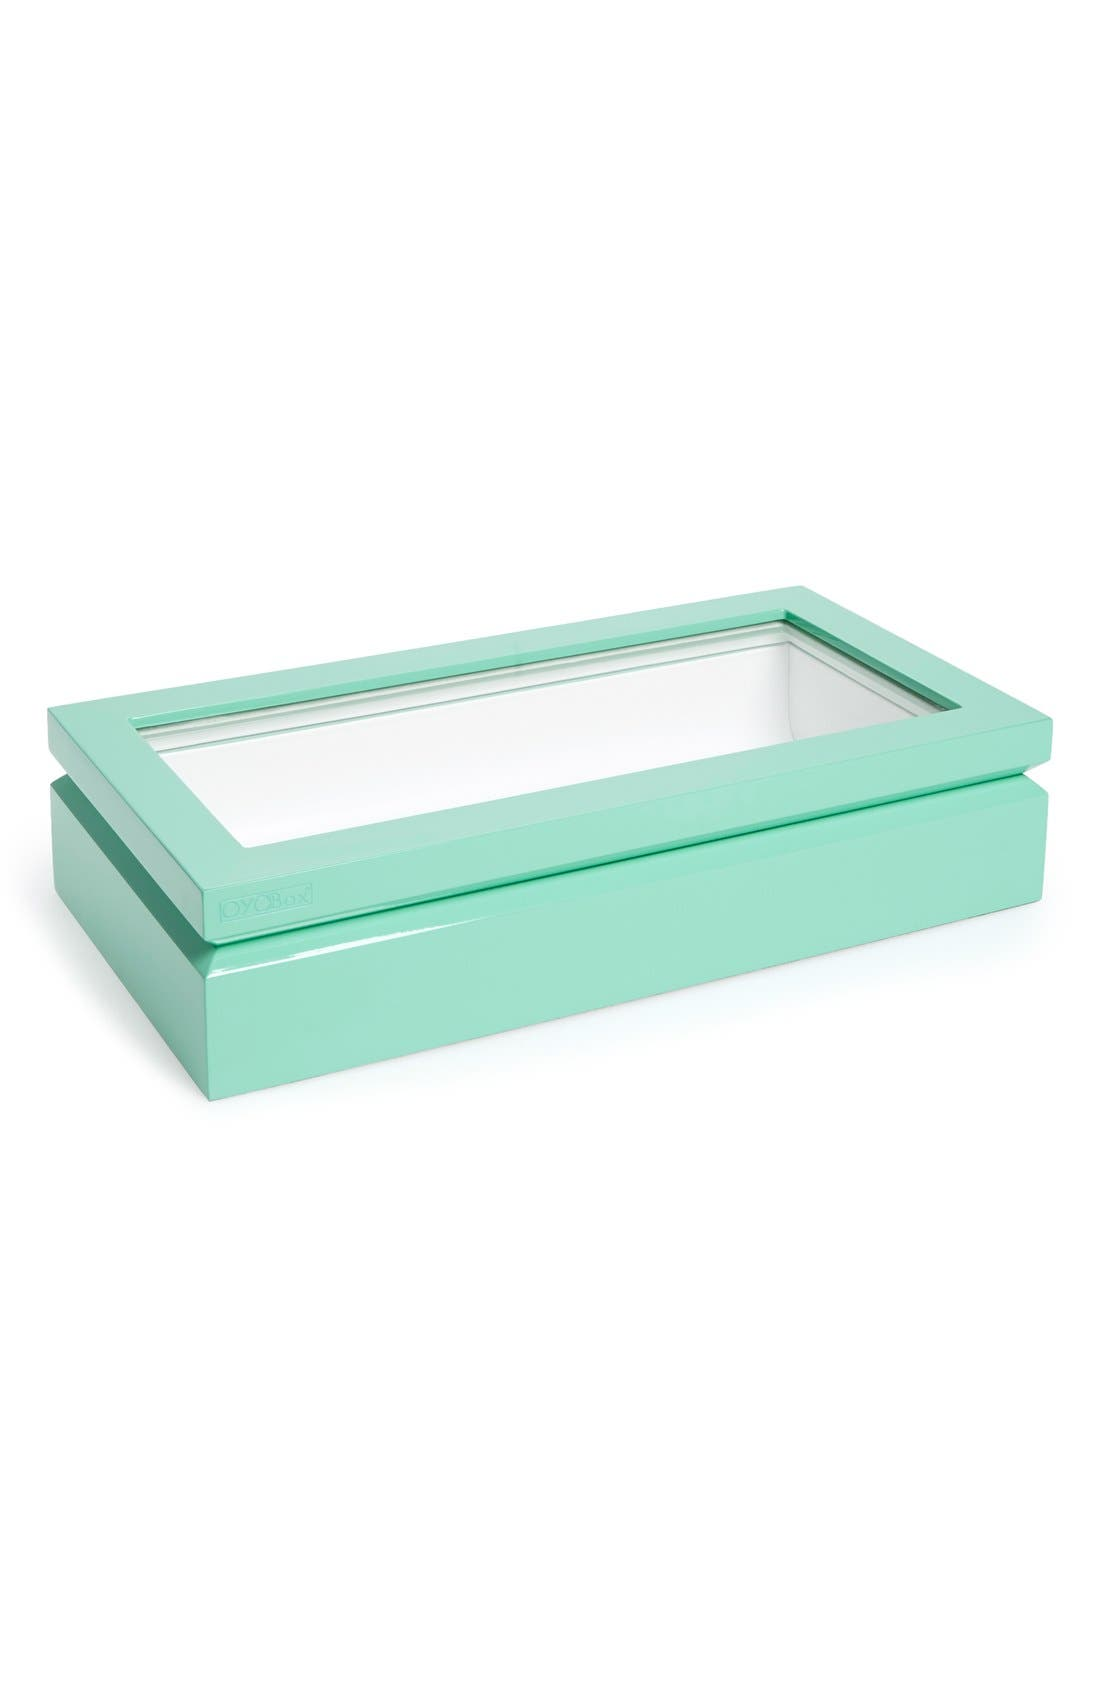 Lacquered Wood Window Top Eyewear Organizer Case,                             Main thumbnail 3, color,